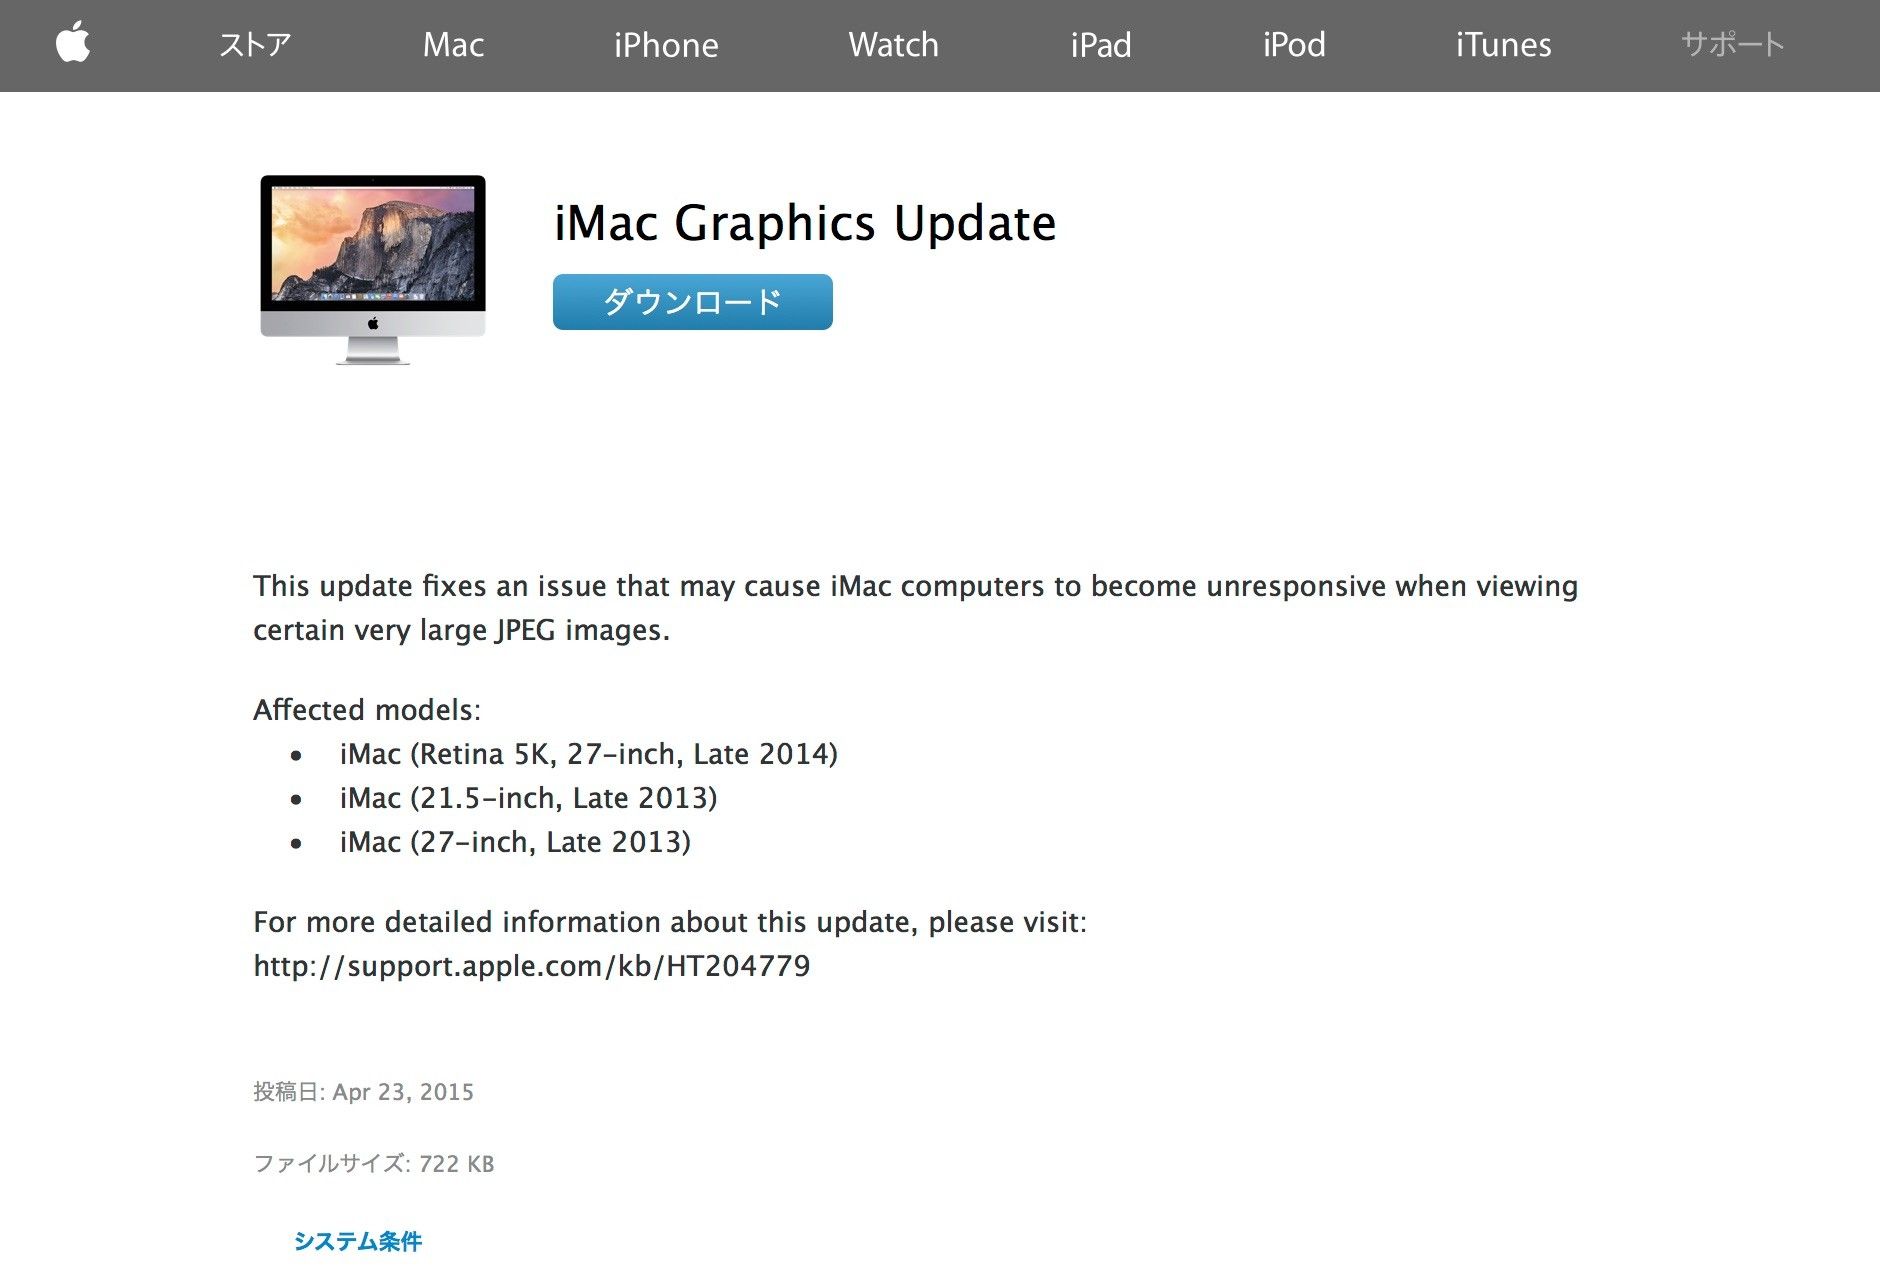 iMac-Graphics-Update-Hero